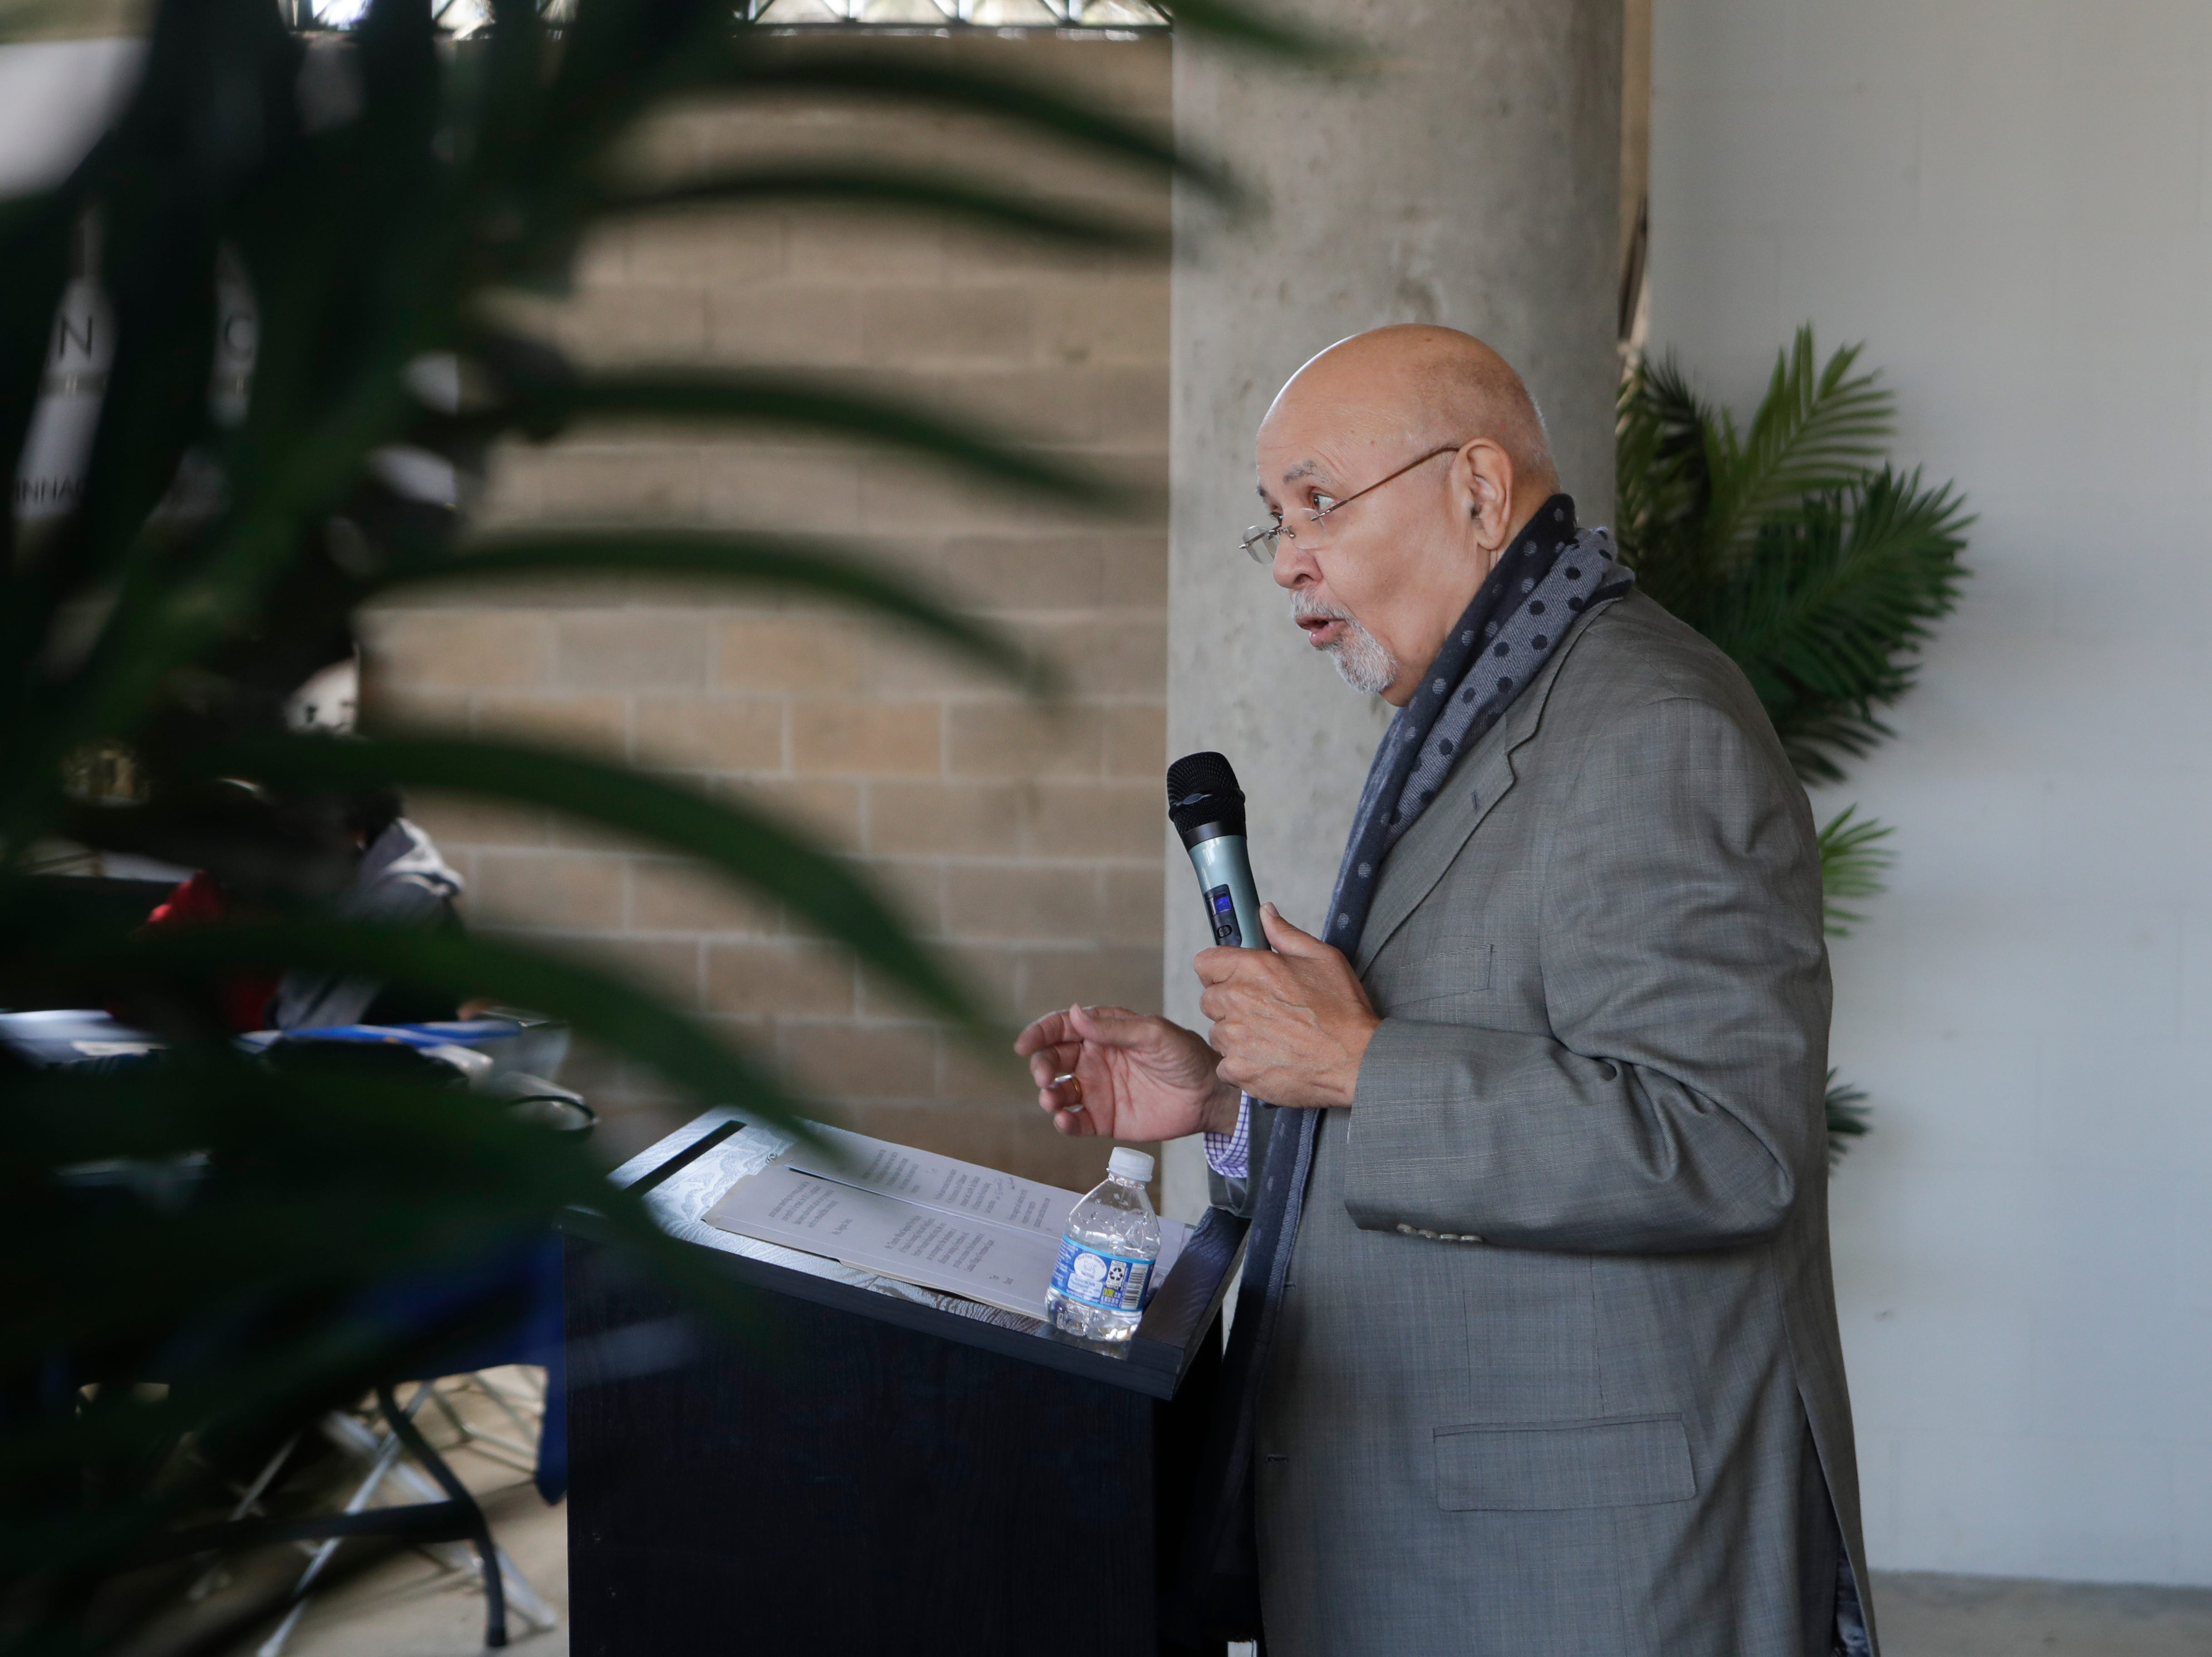 Chief Financial Officer for the Big Bend Community Development Corporation Thomas Lewis speaks during the grand opening celebration for the Casañas Village Apartments at Frenchtown Square Thursday, Jan. 31, 2019.